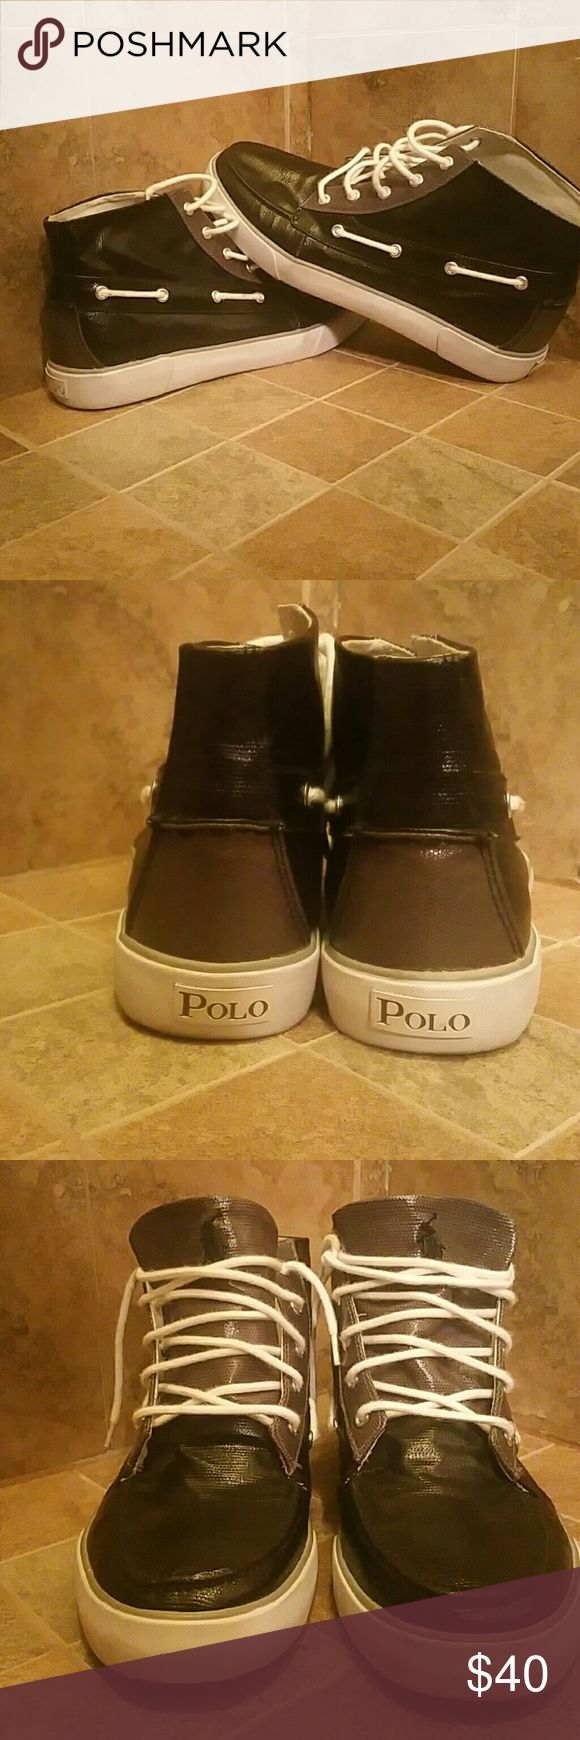 Polo hightop shoes Hightop polo sperry style shoes. There canvas with a lacquer coating very rare. Nrand new condition worn once inside department store brought home and never wore again. Polo by Ralph Lauren Shoes Boat Shoes